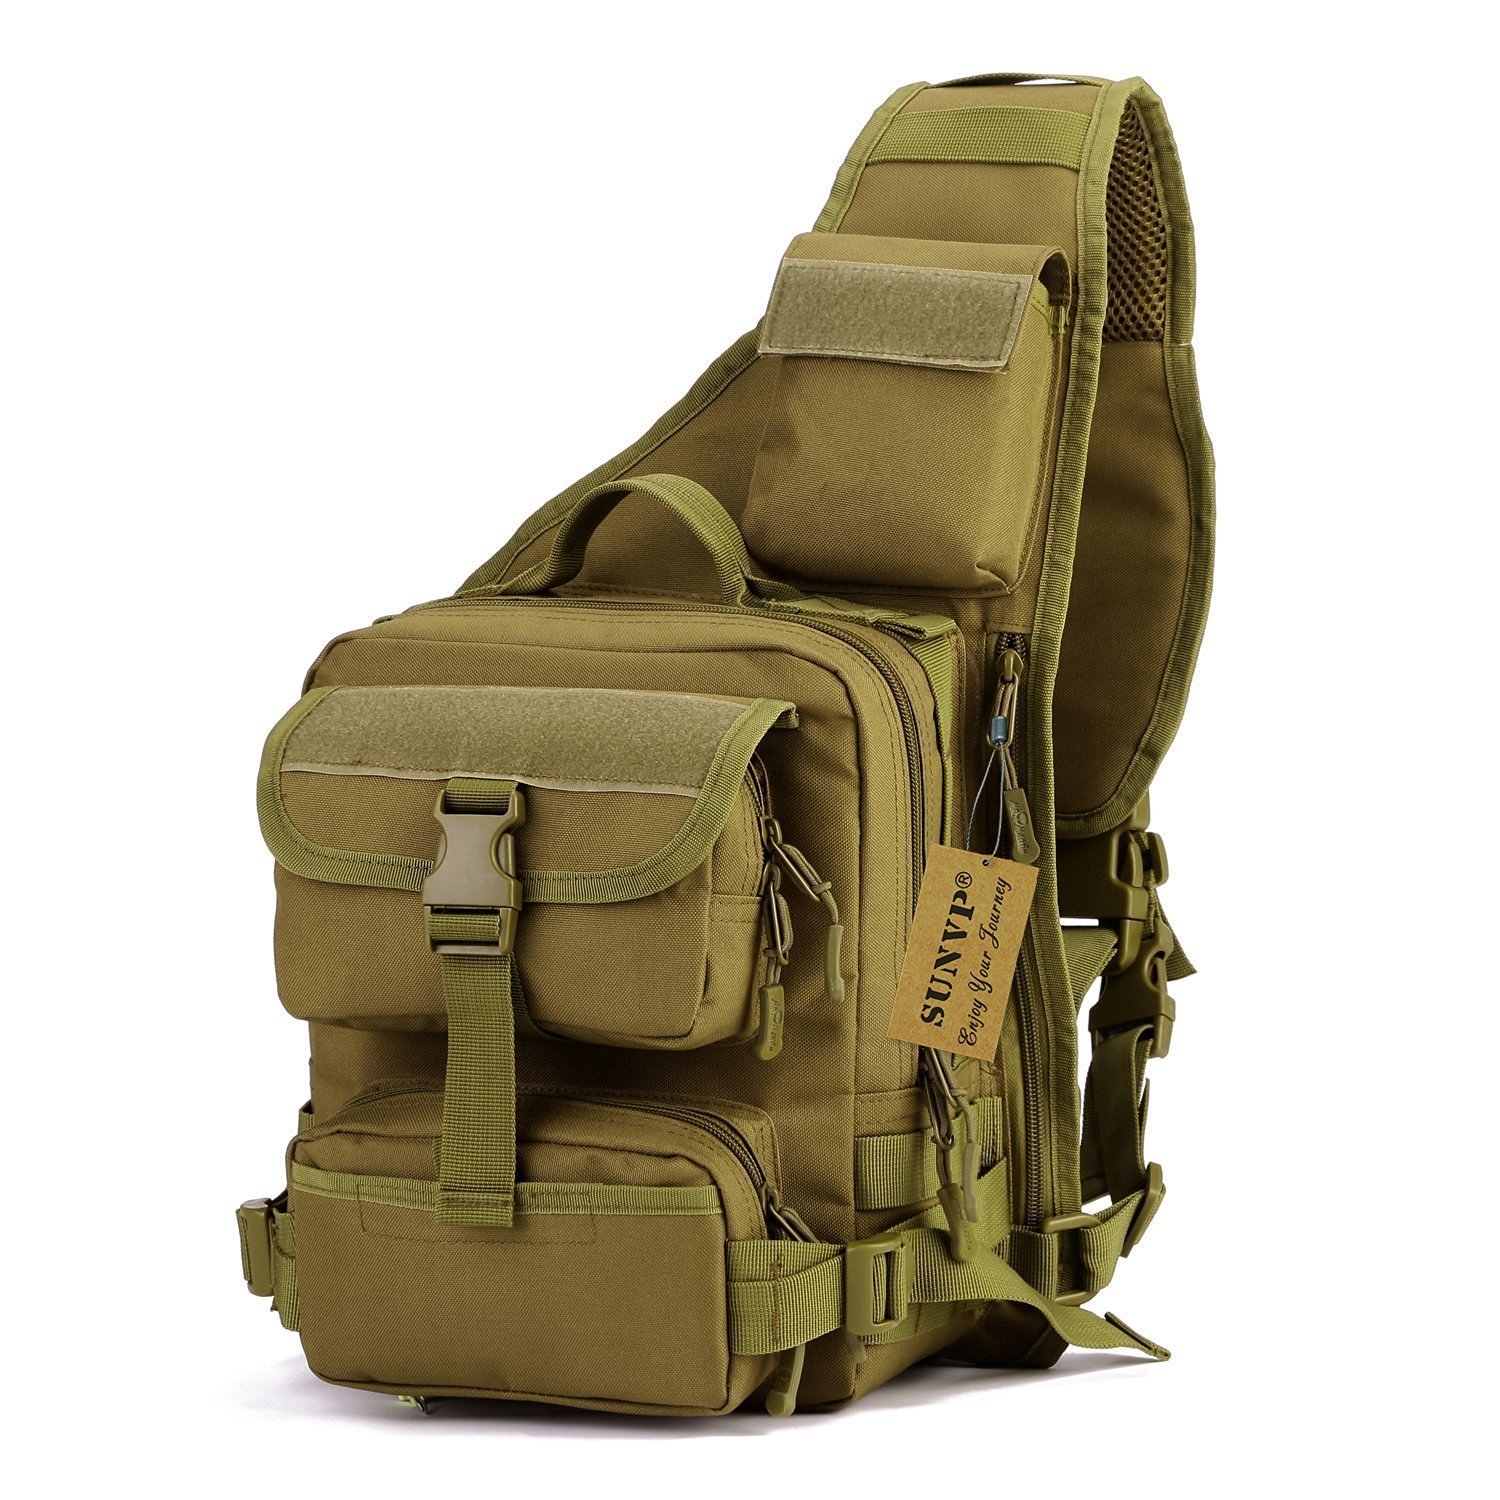 SUNVP Tactical Military Daypack Sling Chest Pack Bag